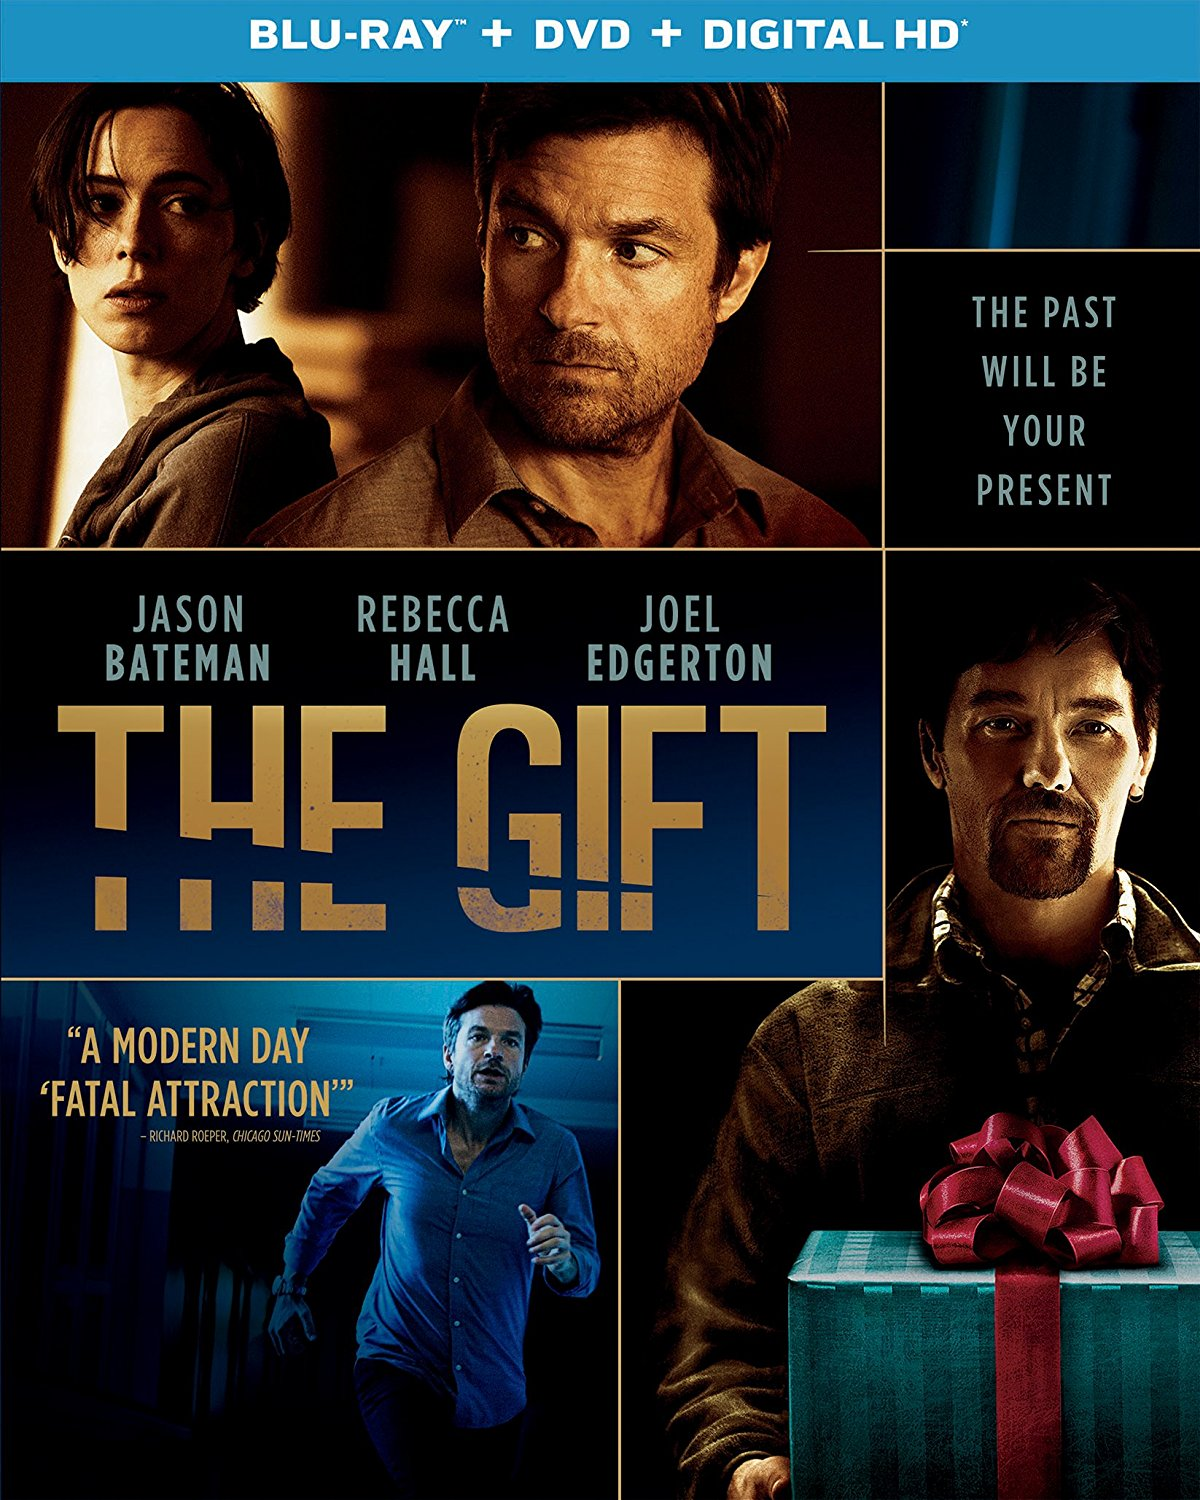 The Gift Blu-ray Review, Rezension, Kritik, Bewertung, Joel Edgerton